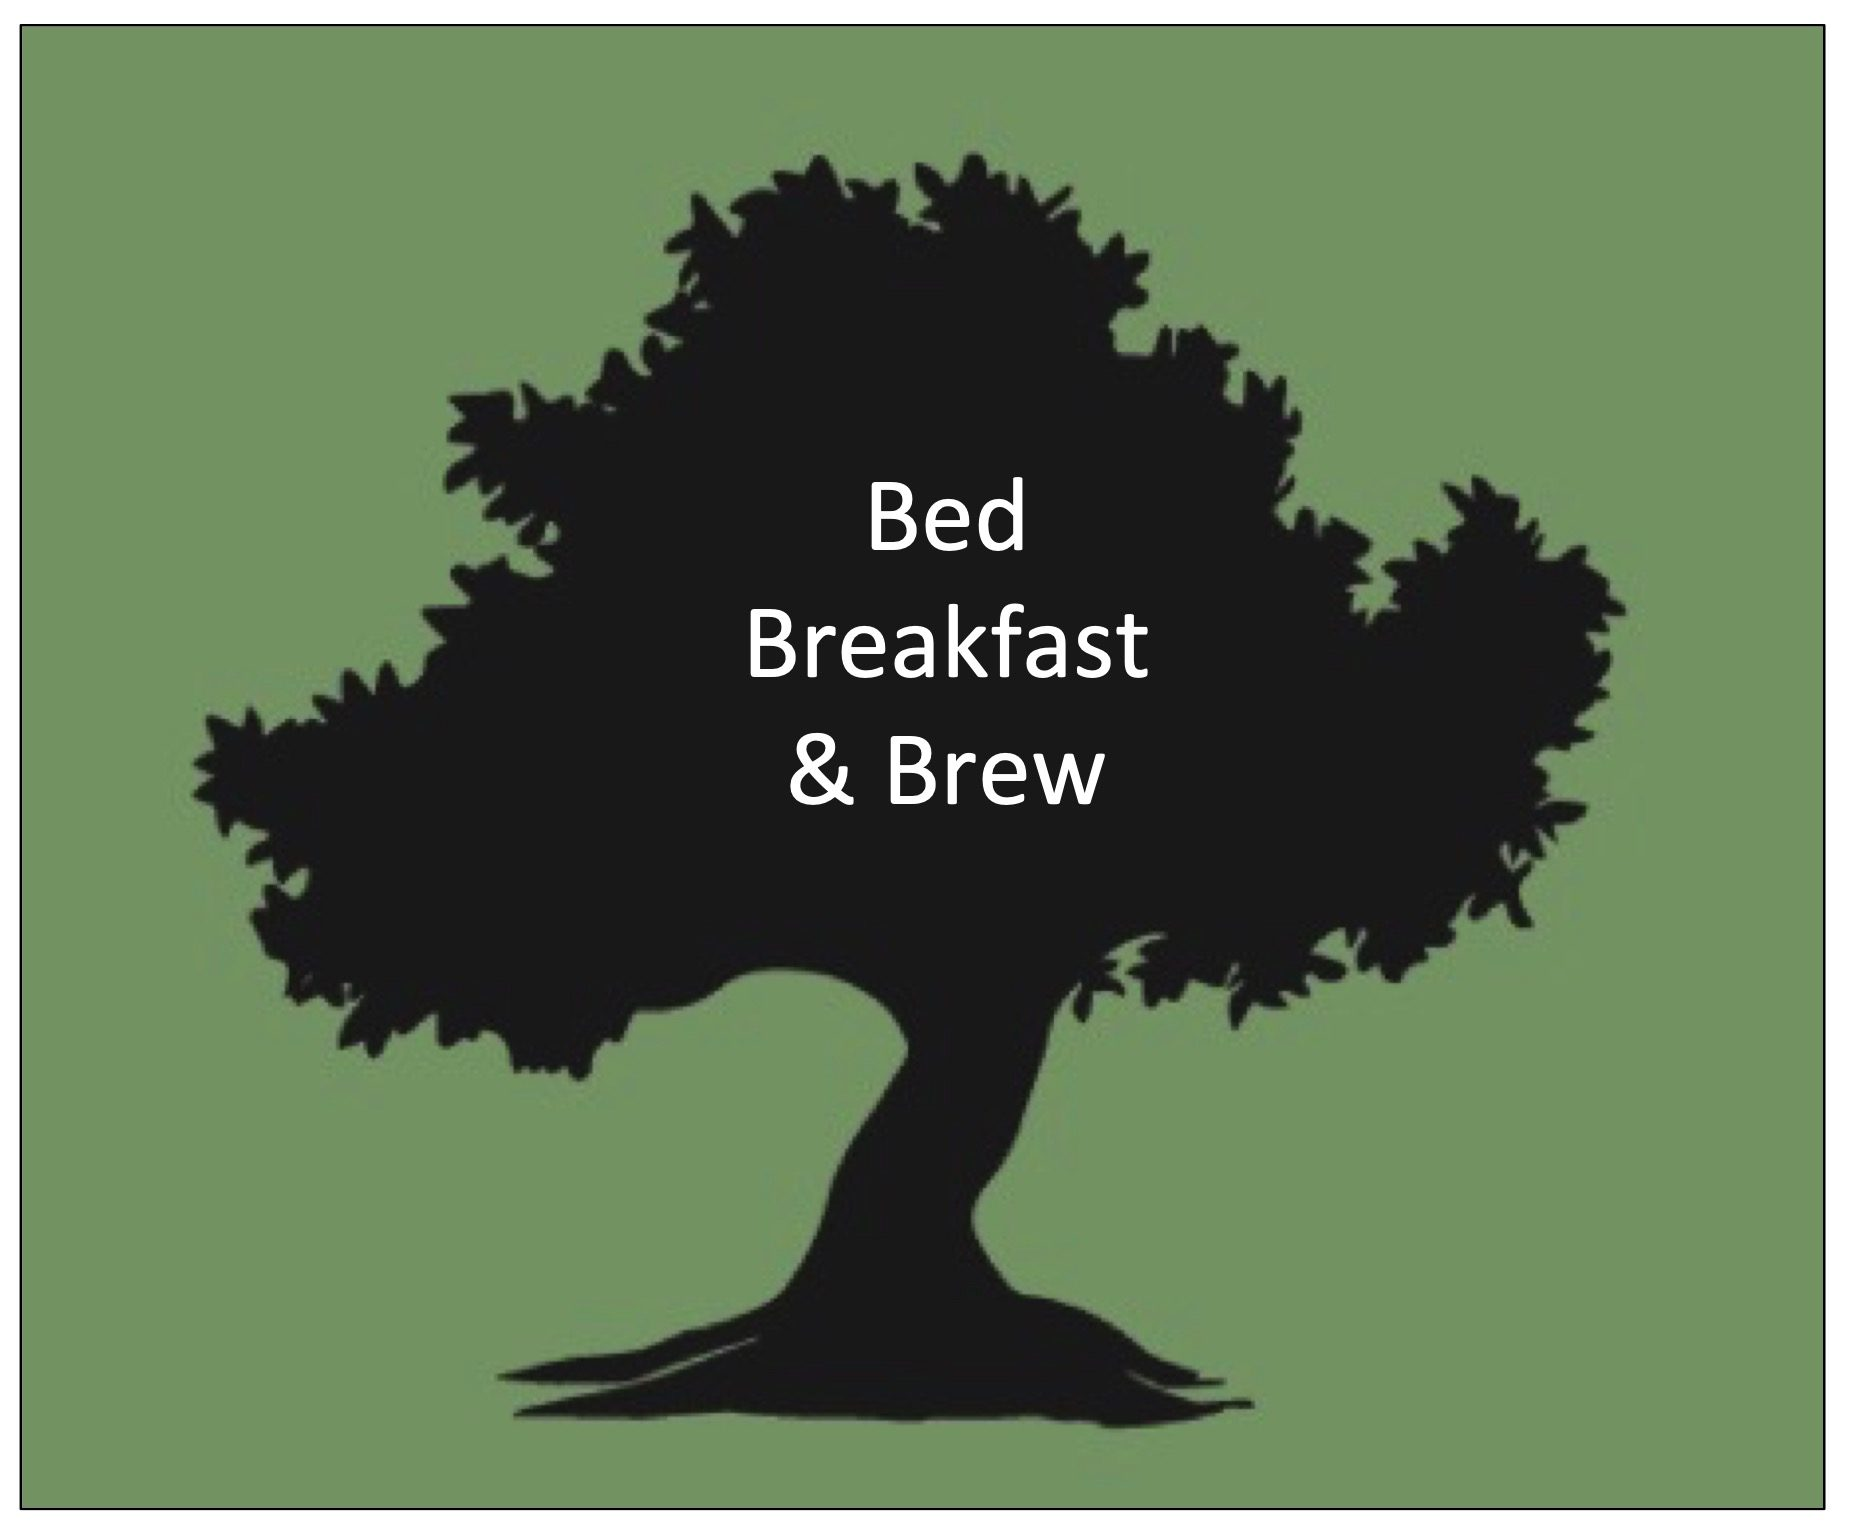 Bed Breakfast & Brew